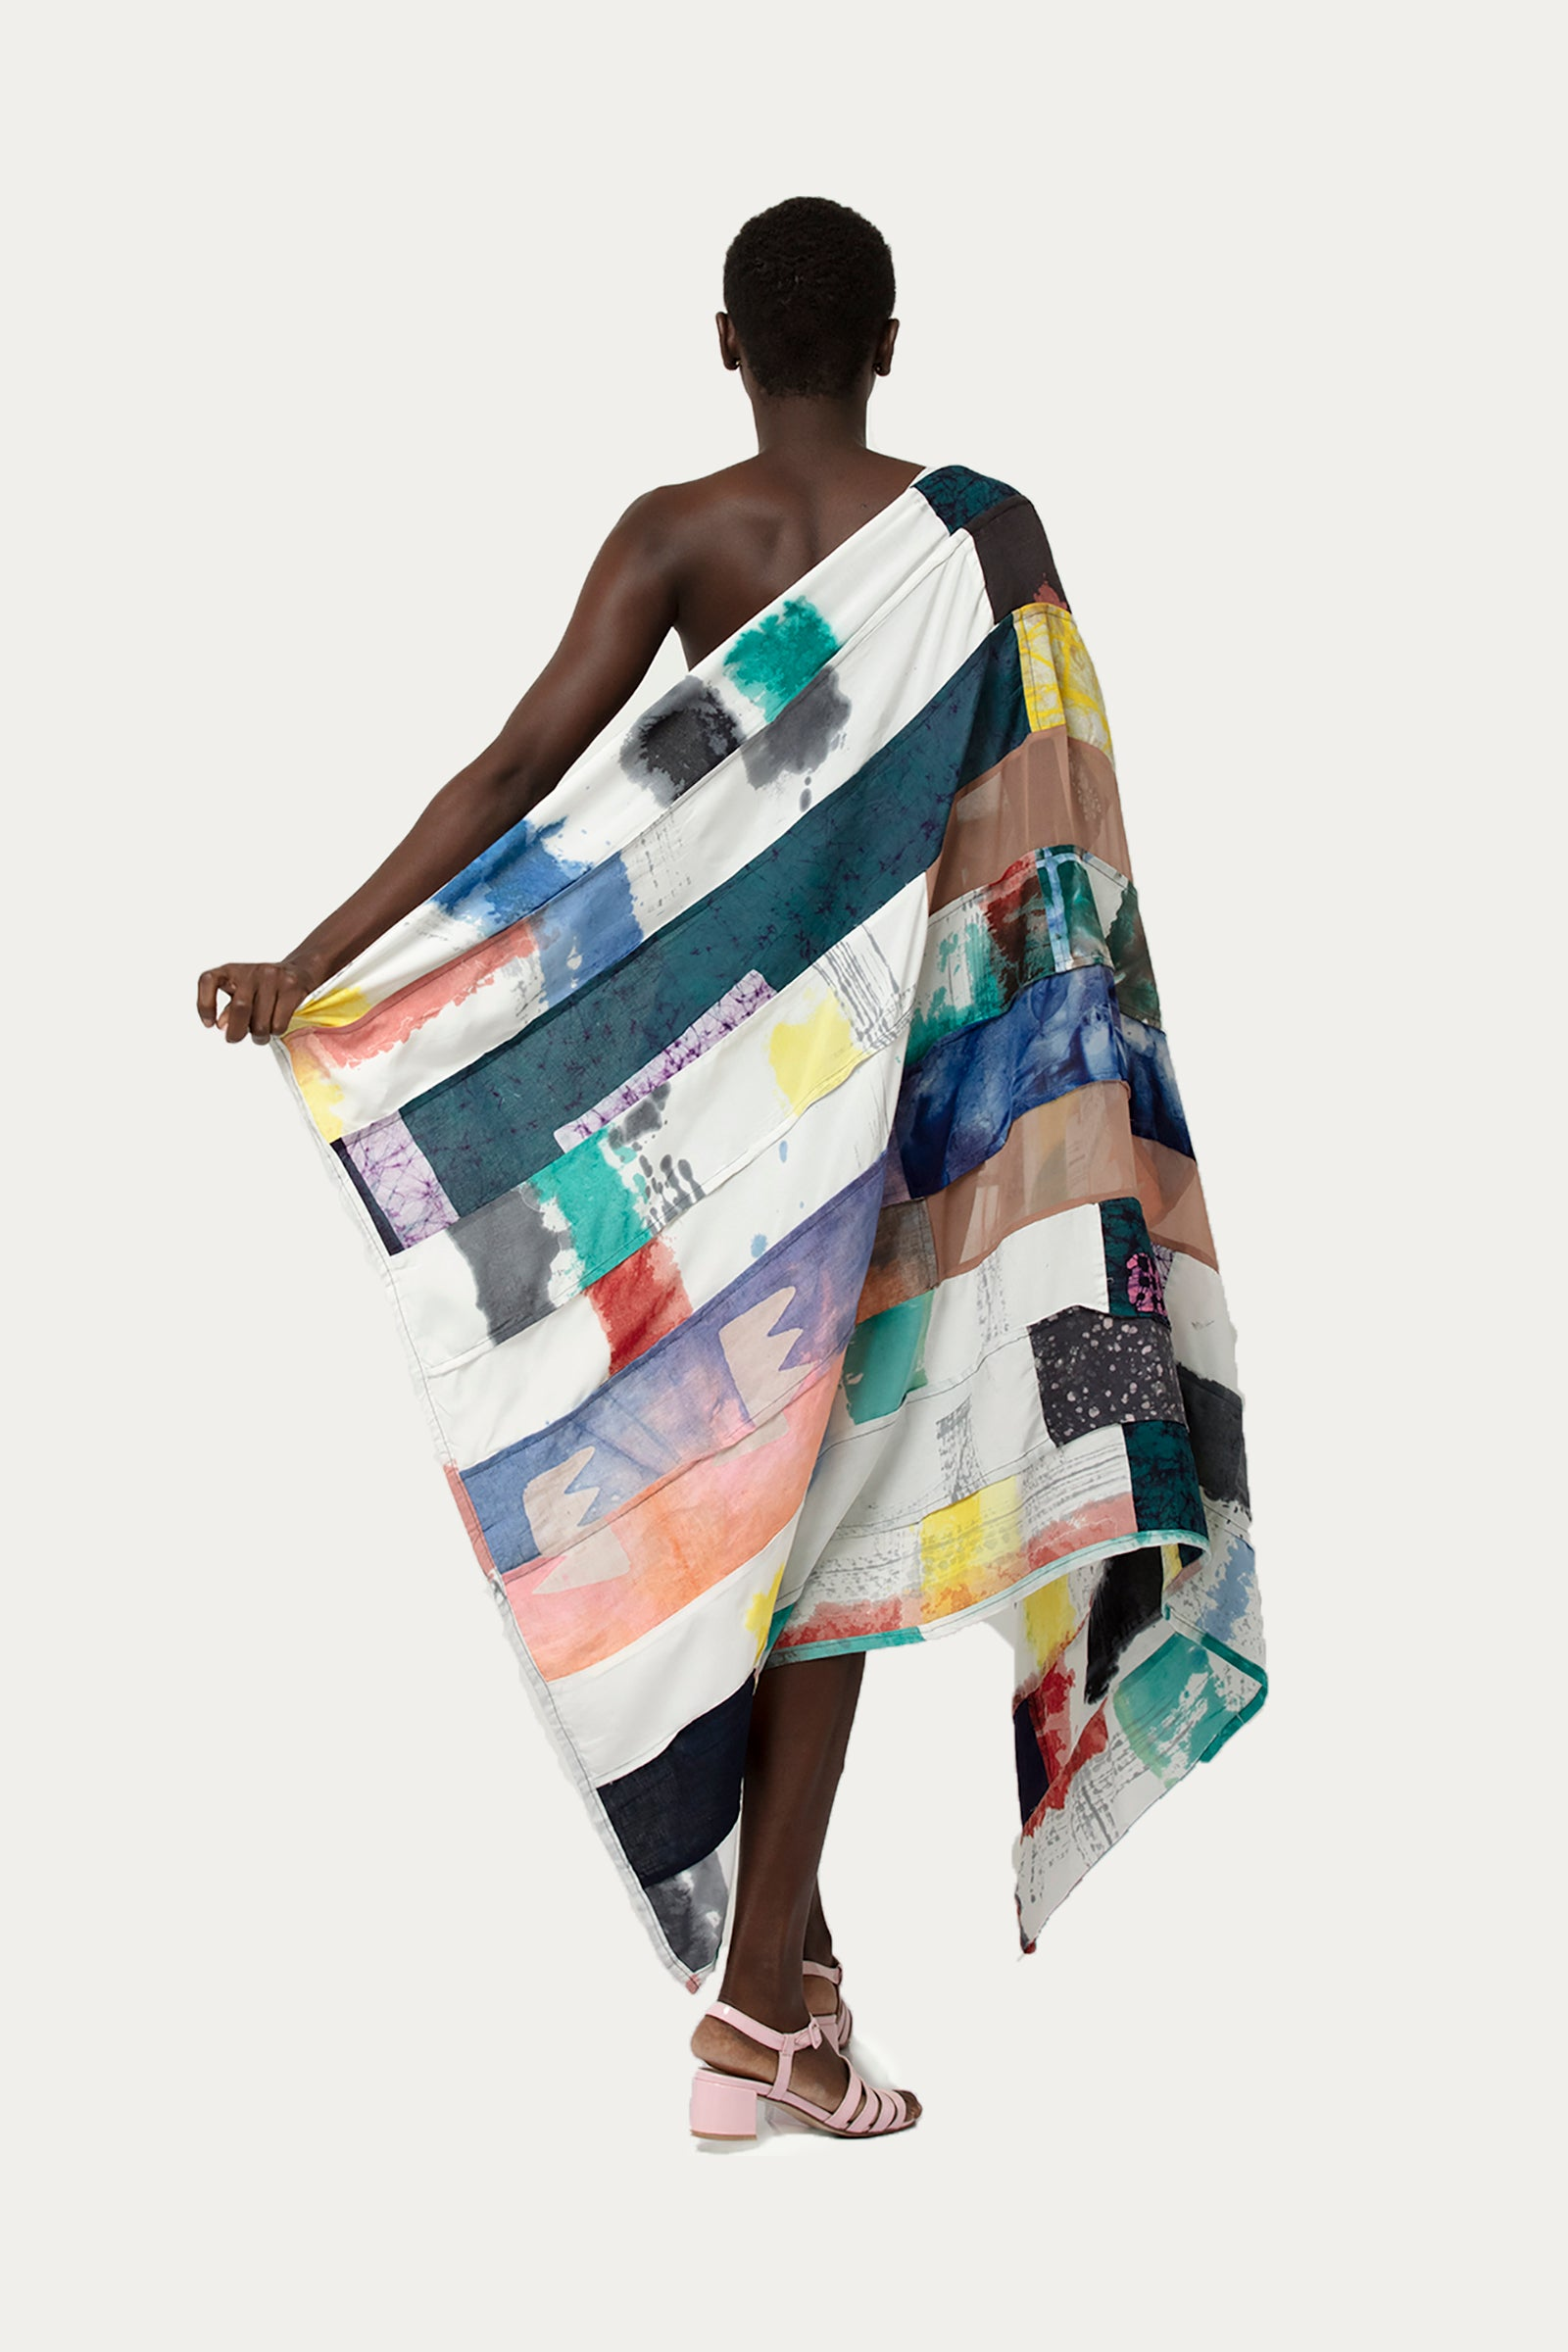 Kenturah Davis Collaboration - Cloth #1